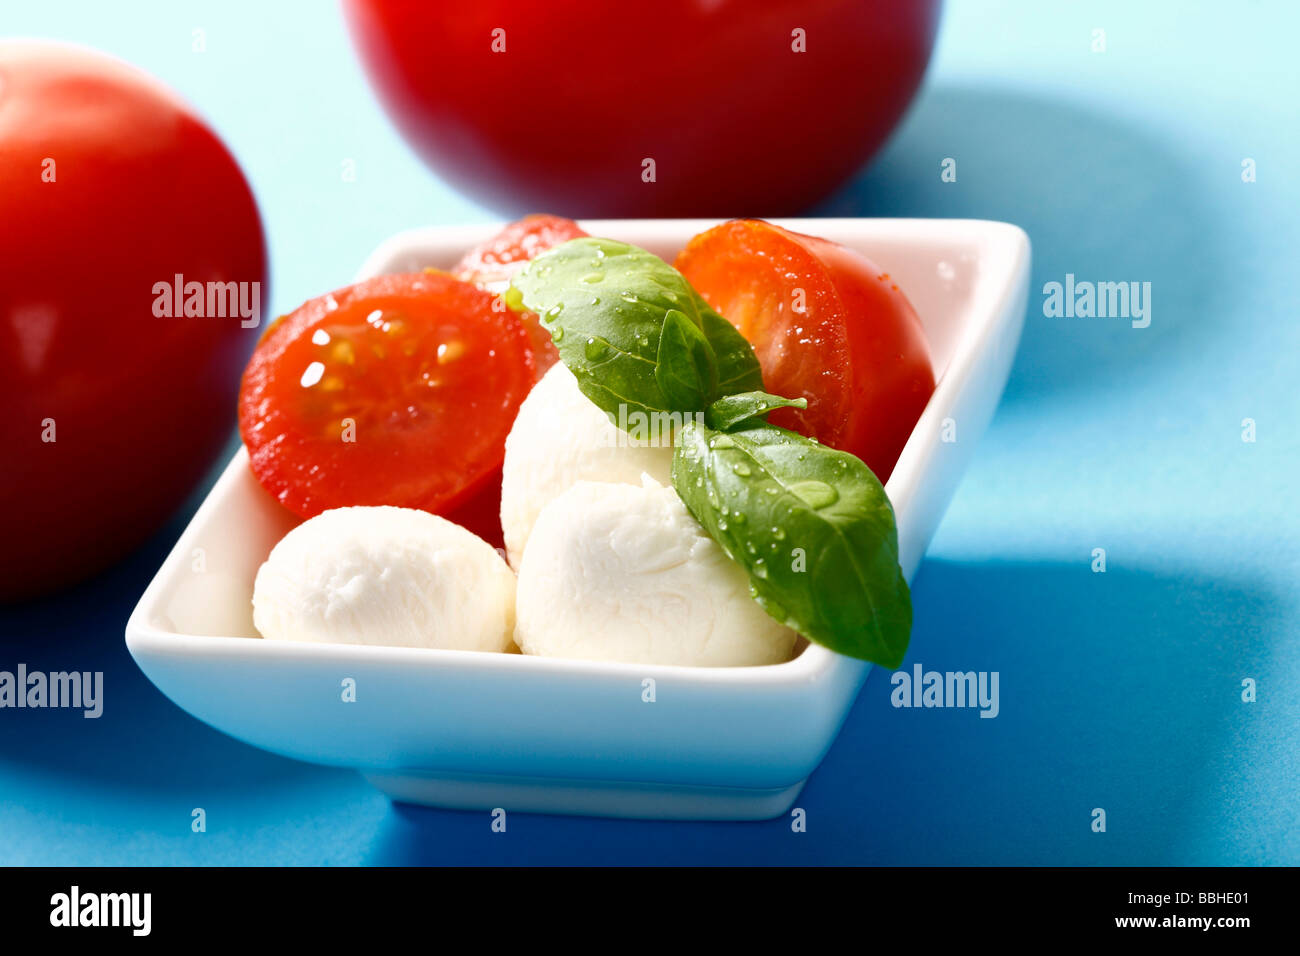 Tomatoes and mozzarella with basil on a dish Stock Photo